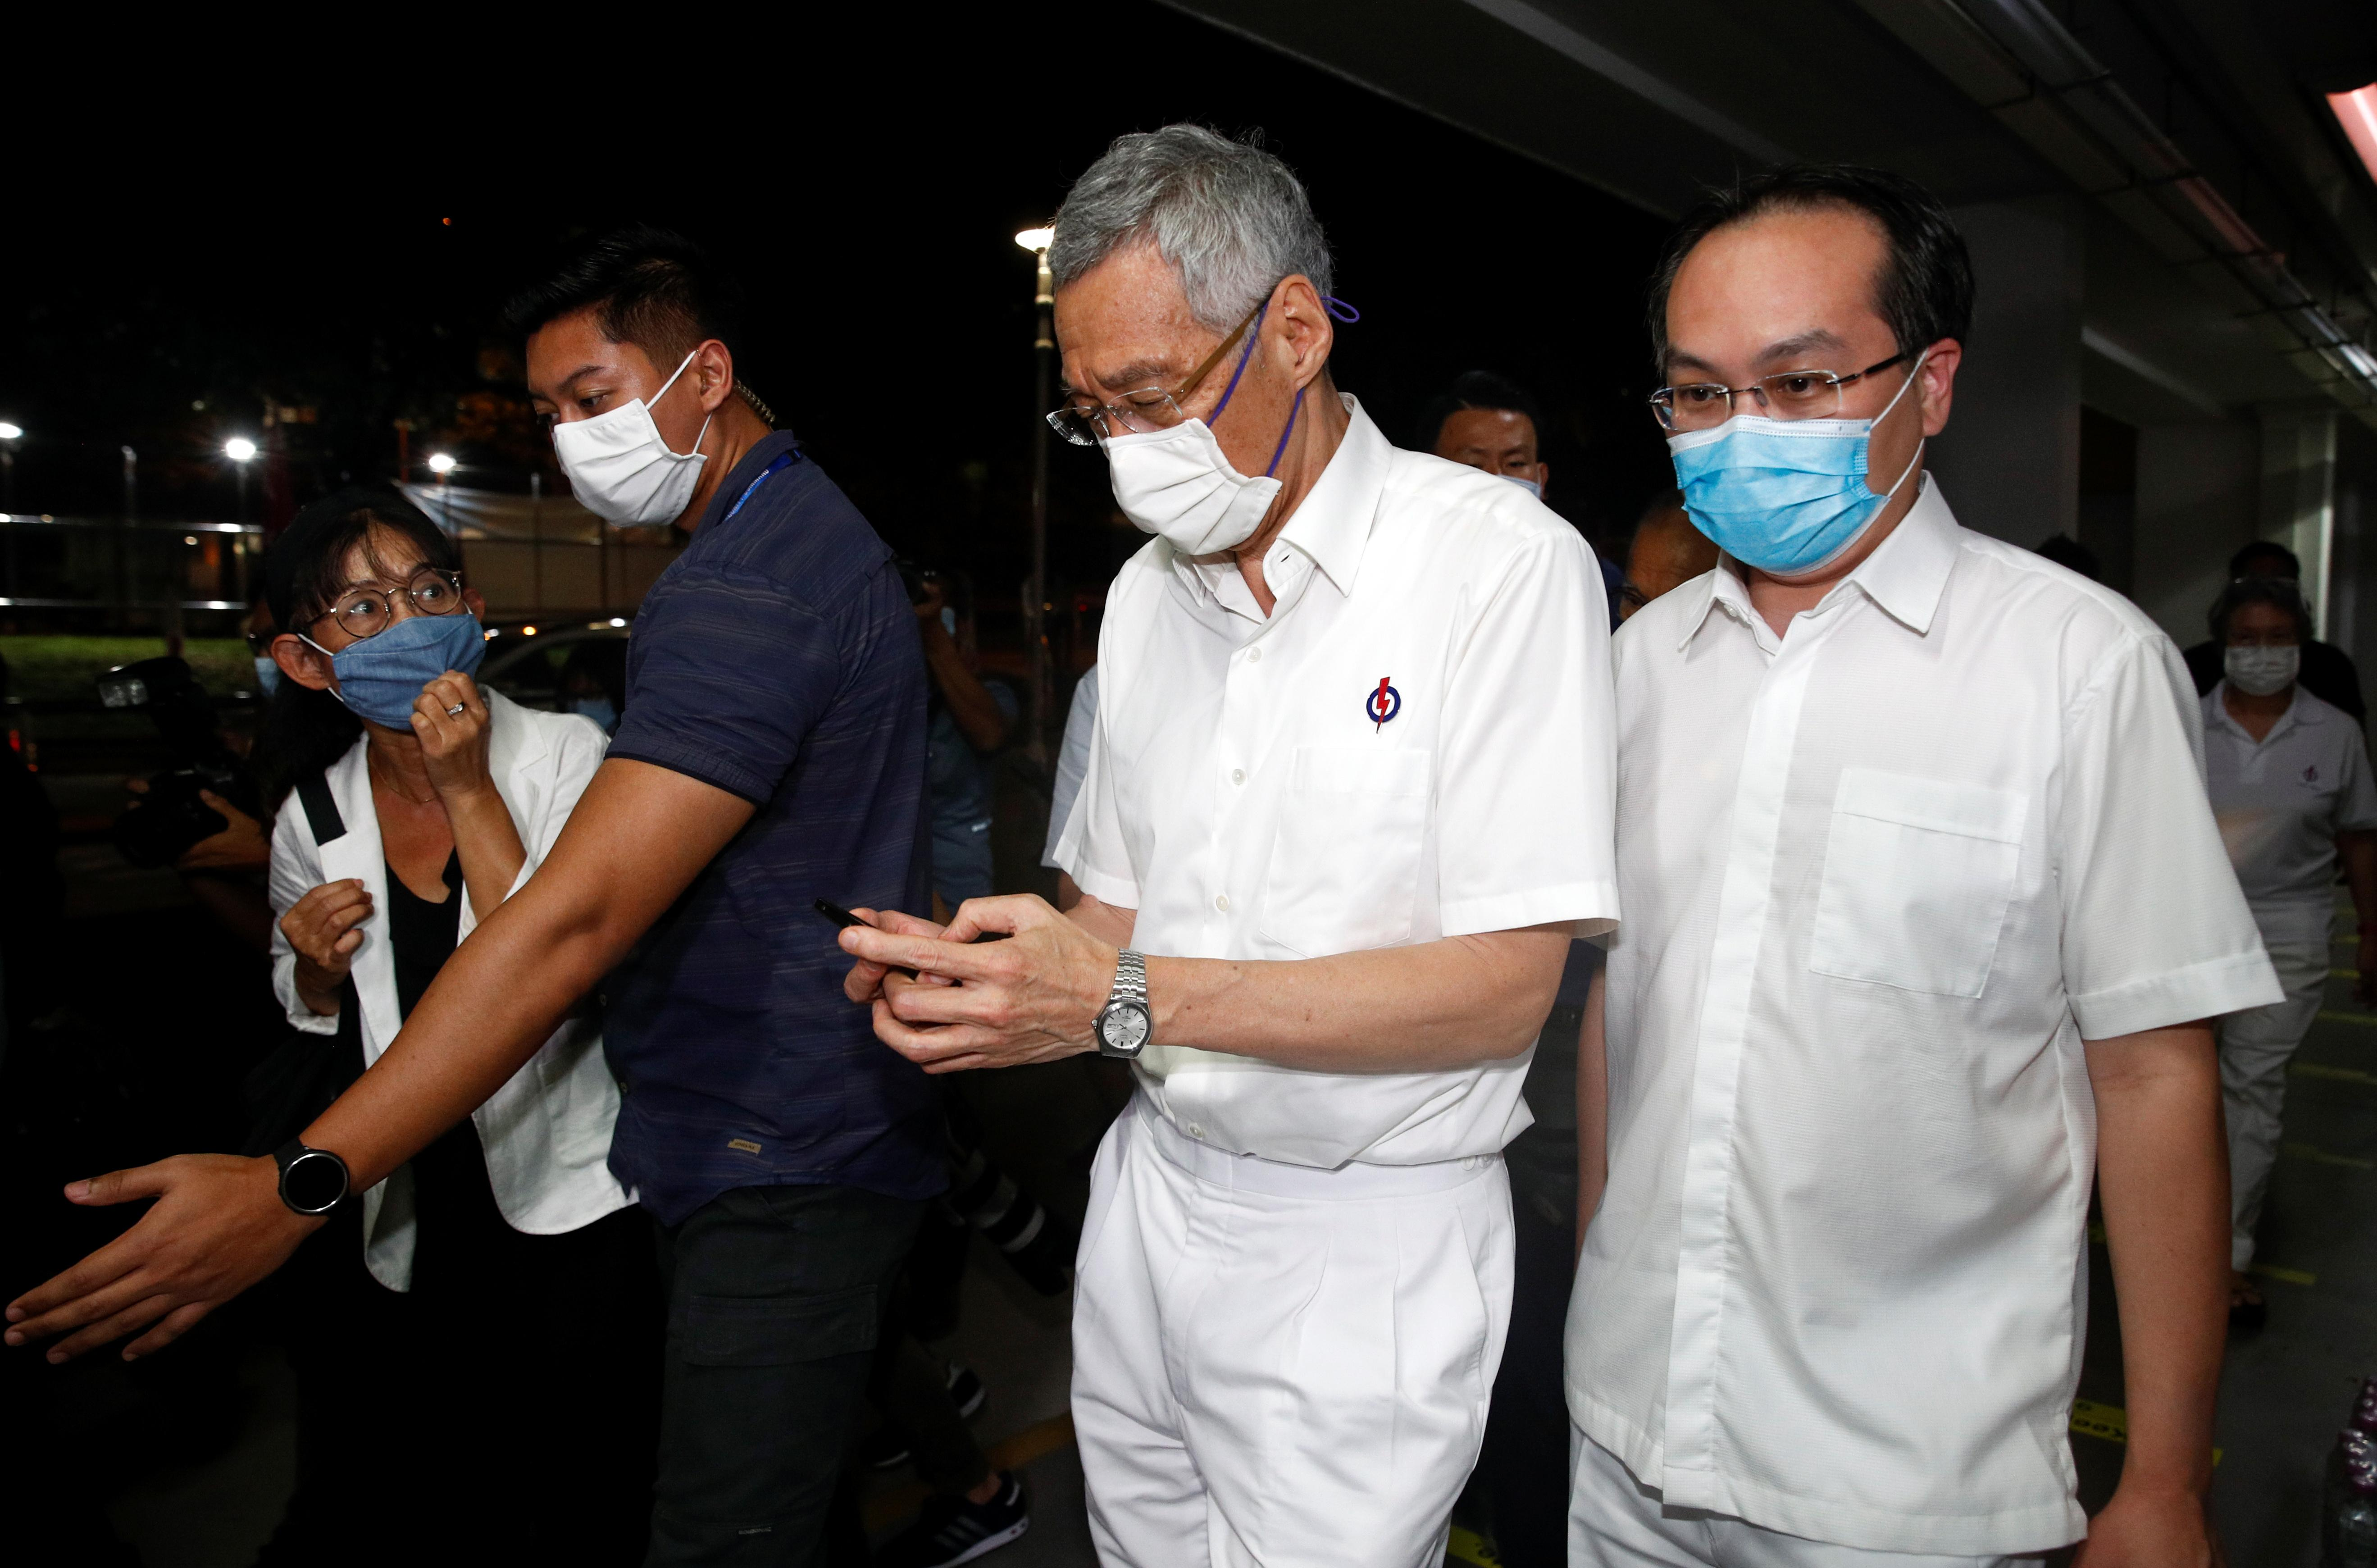 Singapore's Prime Minister Lee Hsien Loong uses a mobile phone at a People's Action Party branch office, as ballots are being counted during the general election, in Singapore July 11, 2020. Photo: Reuters